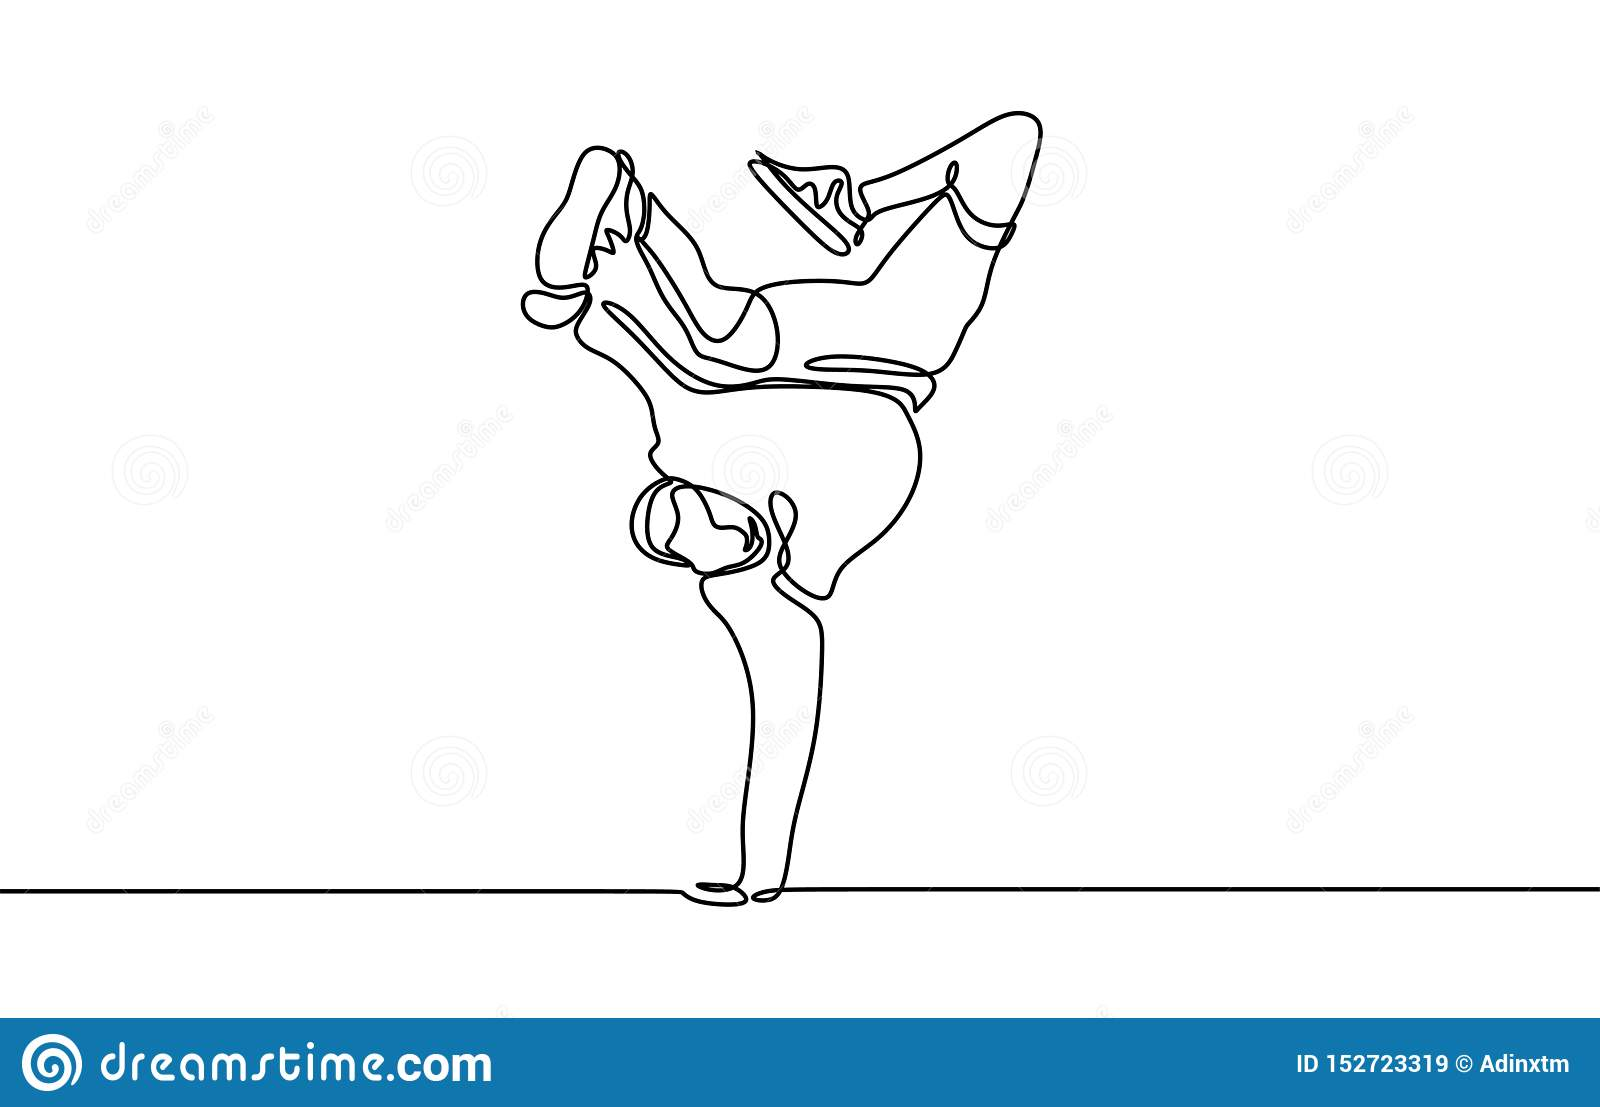 Continuous line drawing break dancer dancing sport theme isolated on white background minimalist design